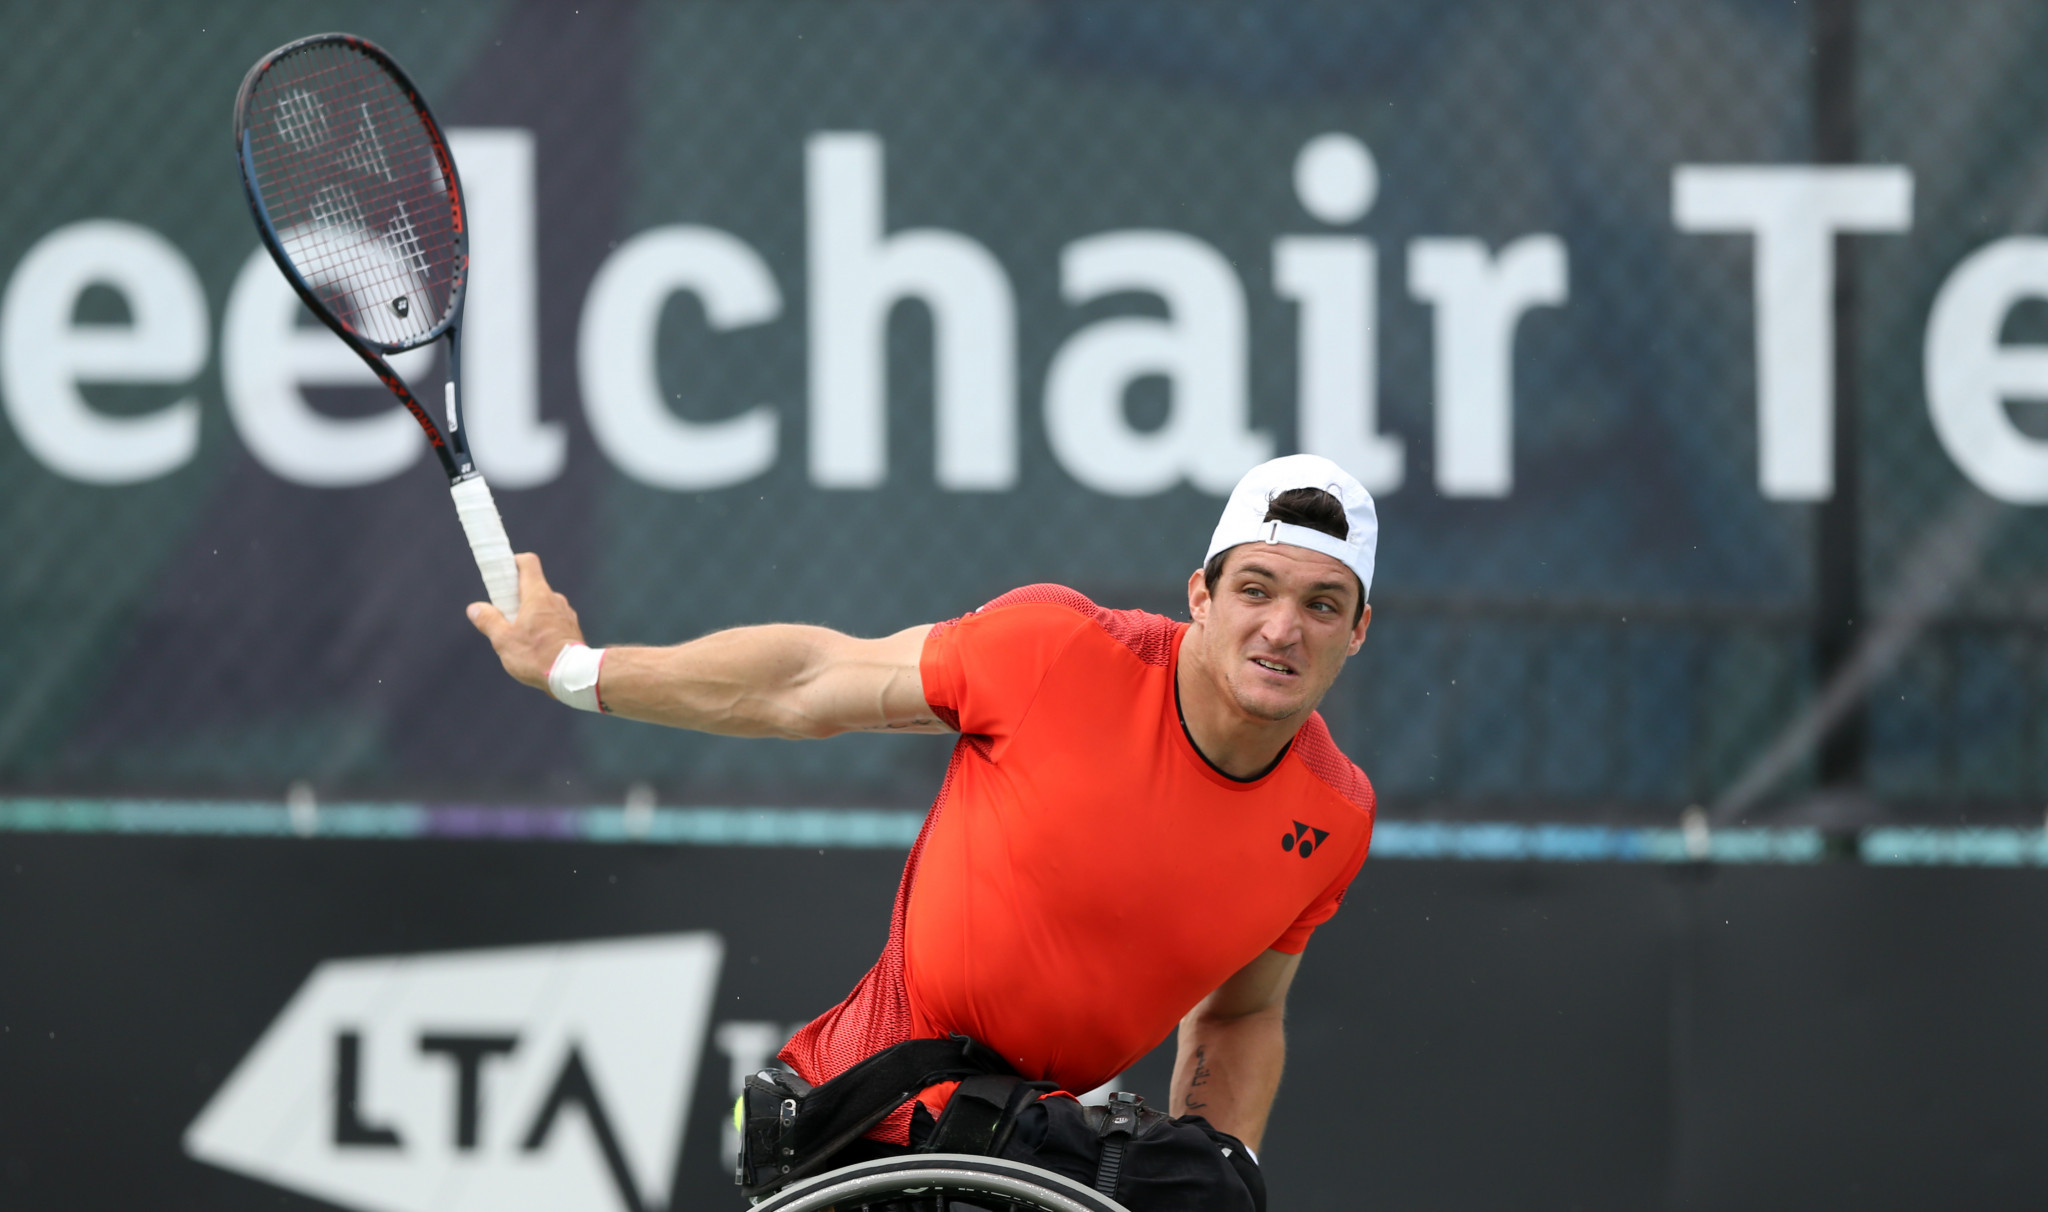 Argentina's Gustavo Fernández will be looking to claim success in the men's event at the NEC Wheelchair Singles Masters in Orlando ©Getty Images